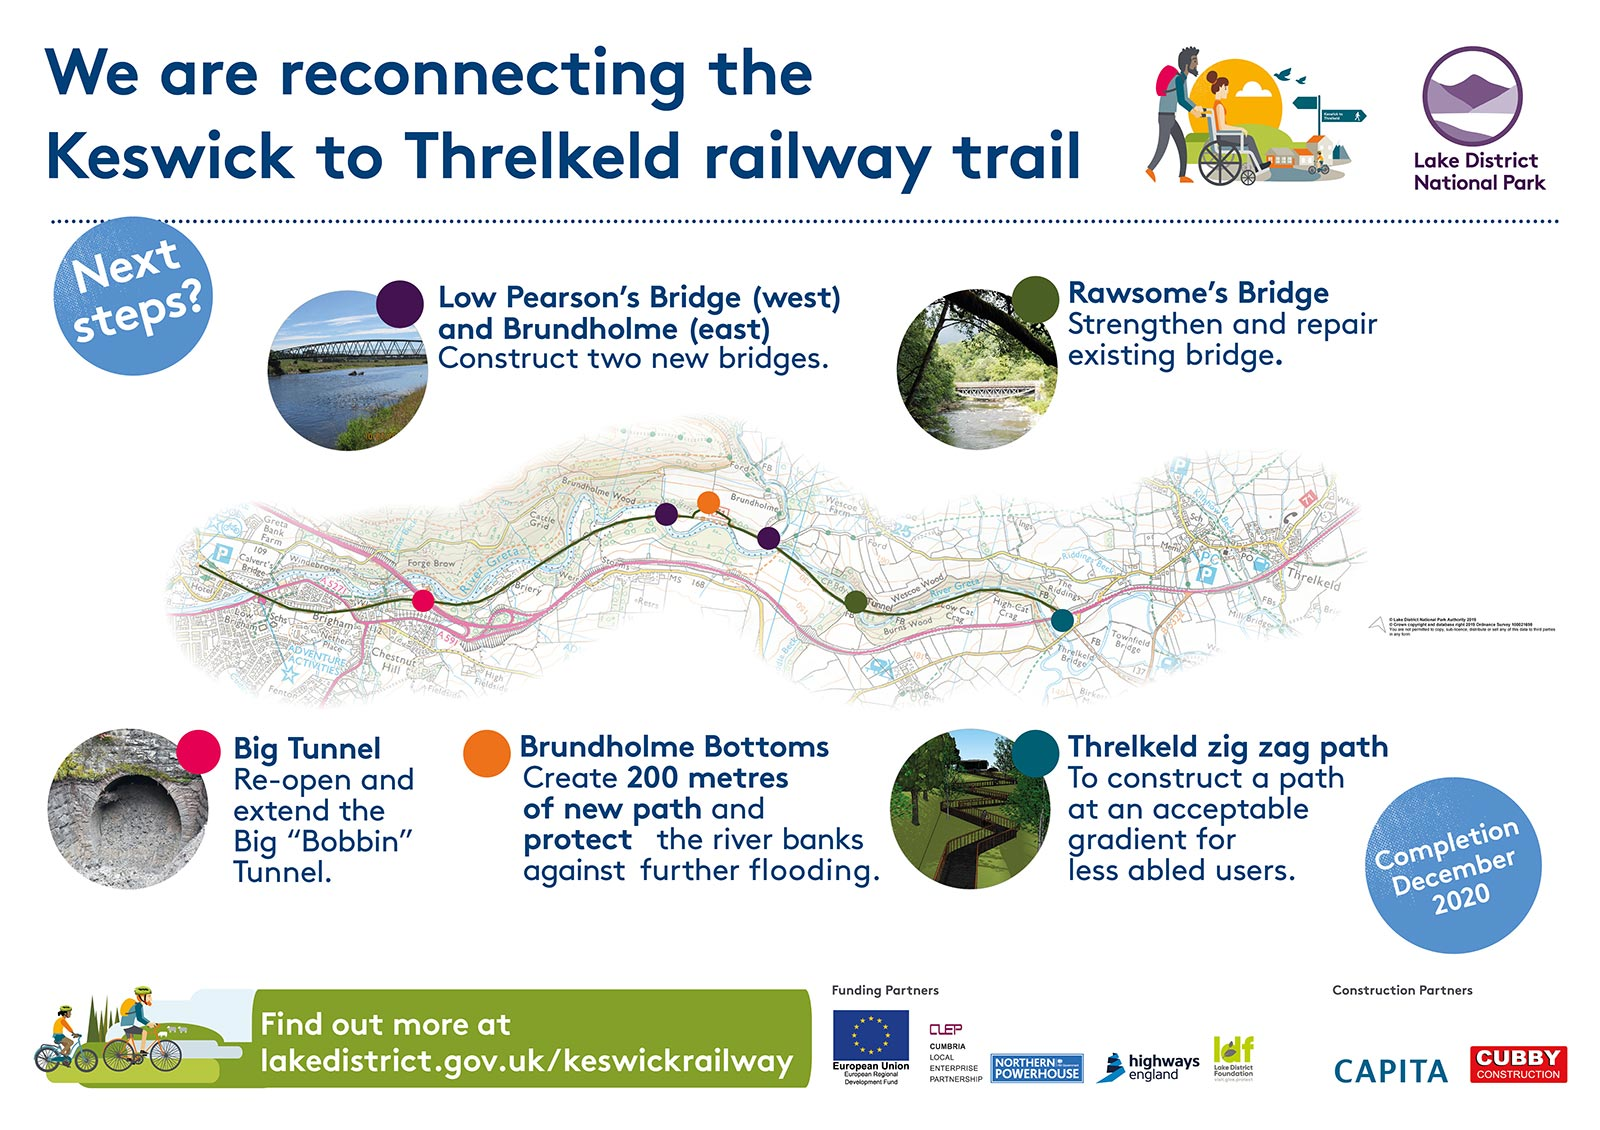 Keswick to Threlkeld overview map